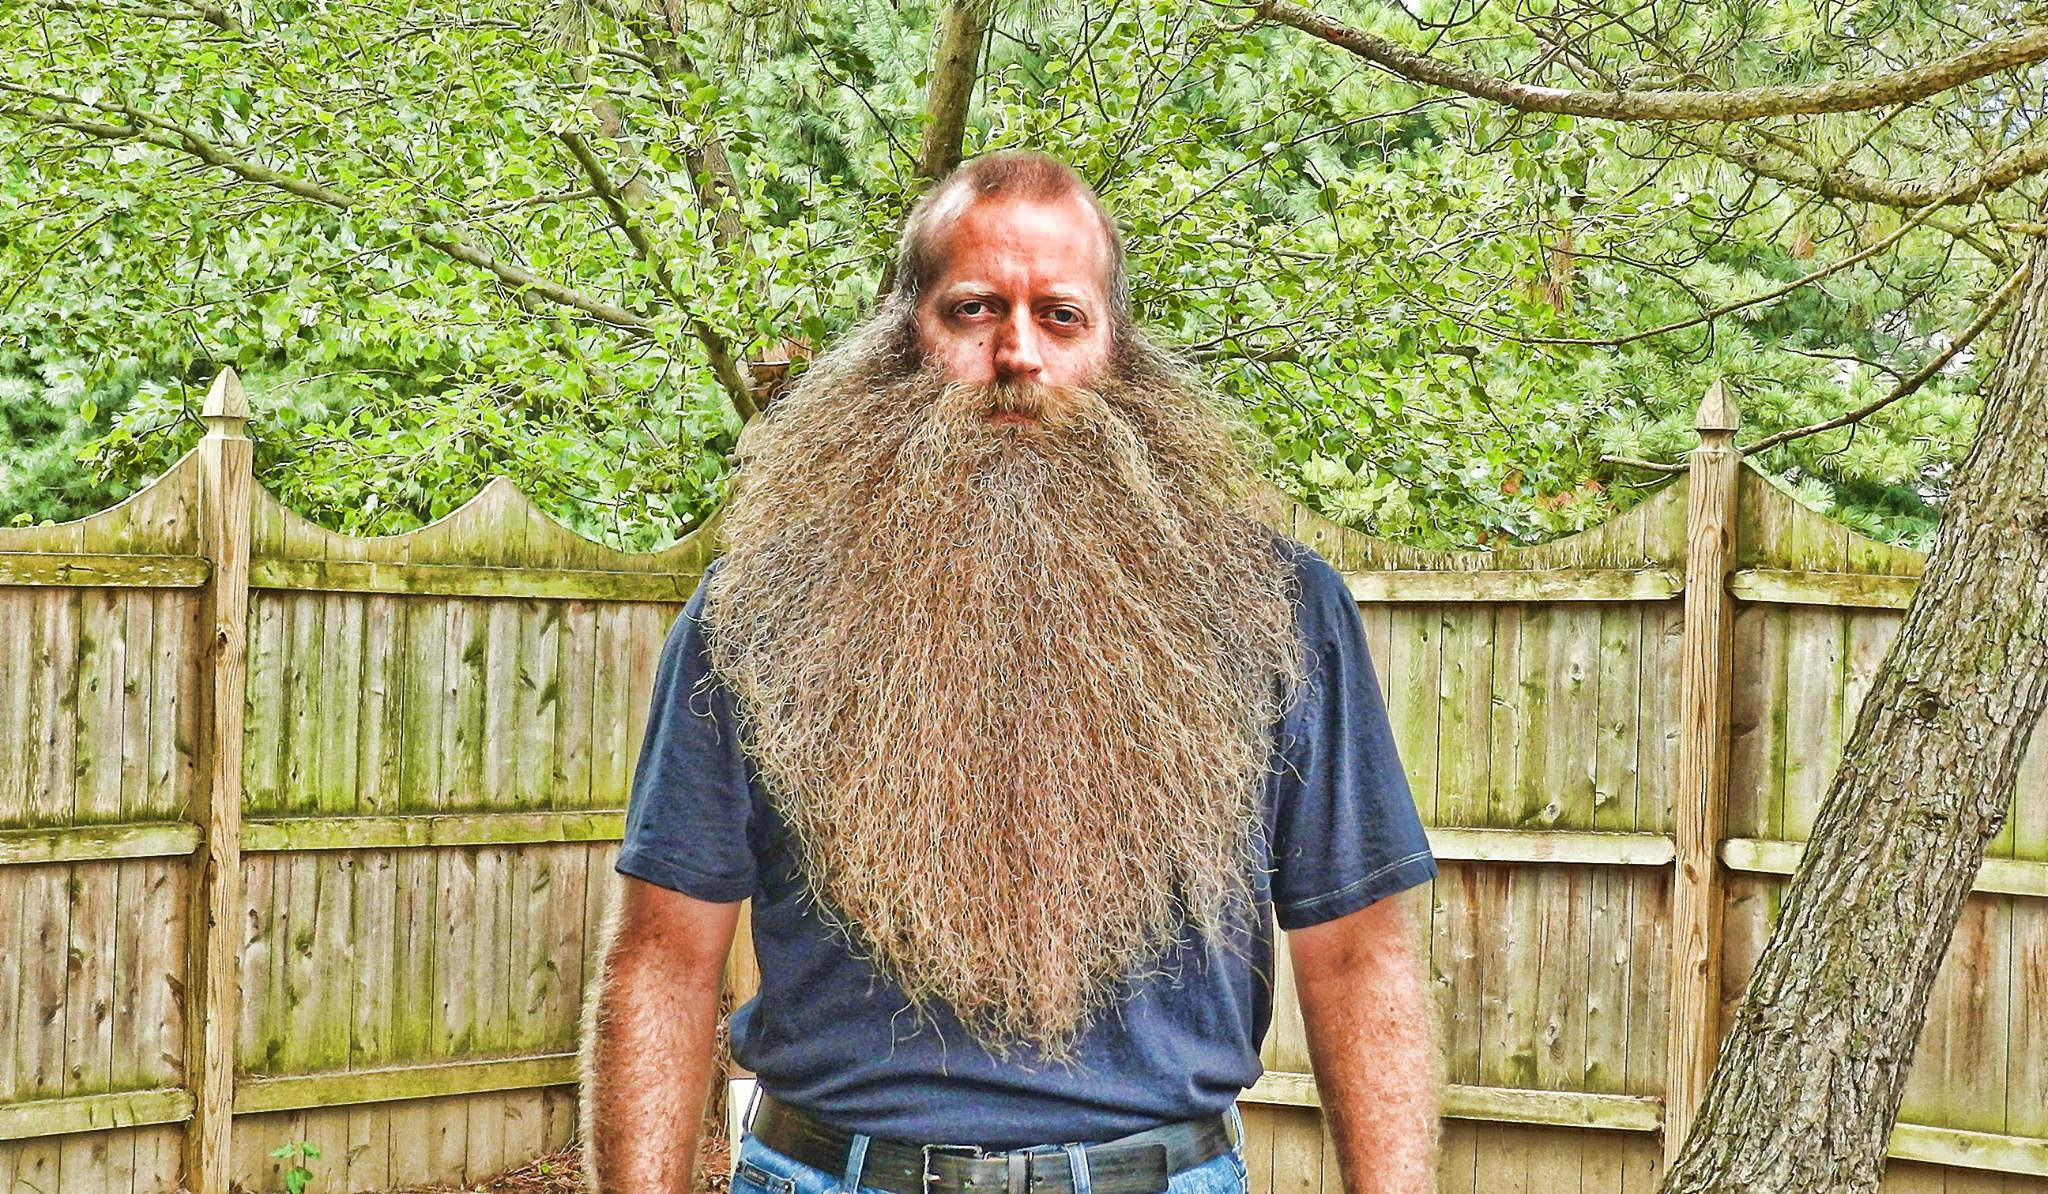 Jeff Langum, World Full Beard Champion